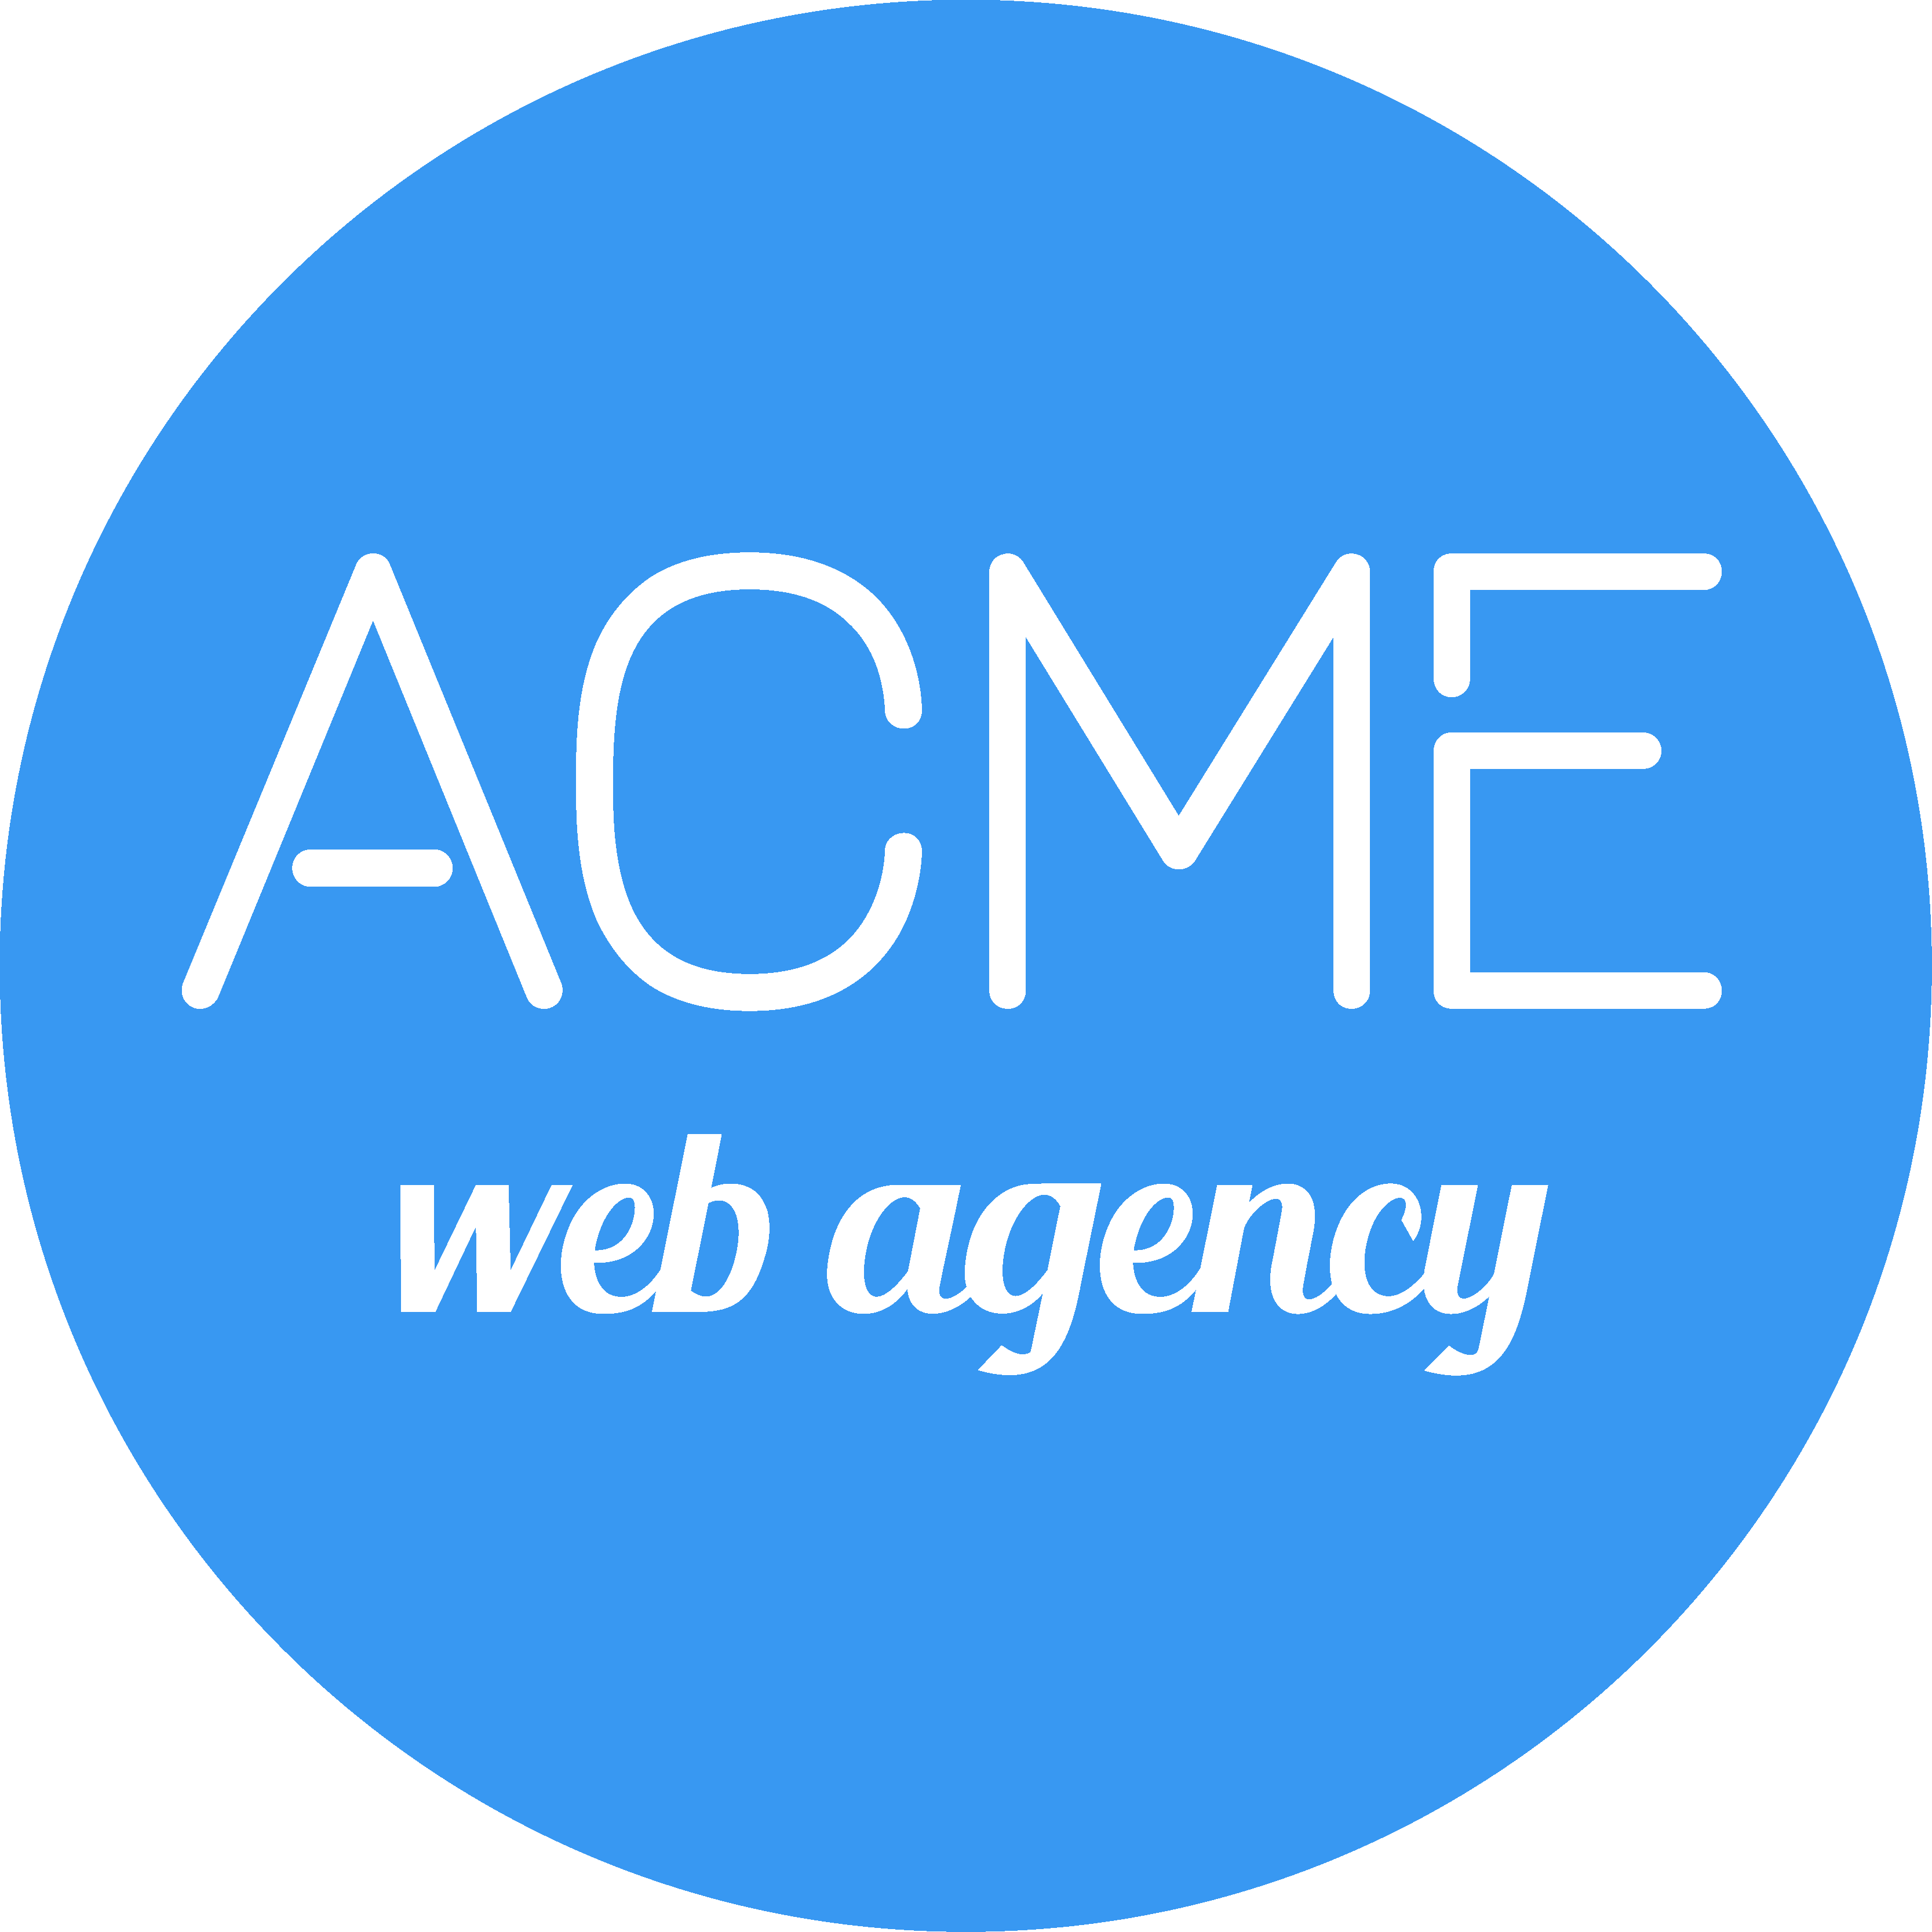 Acme web agency